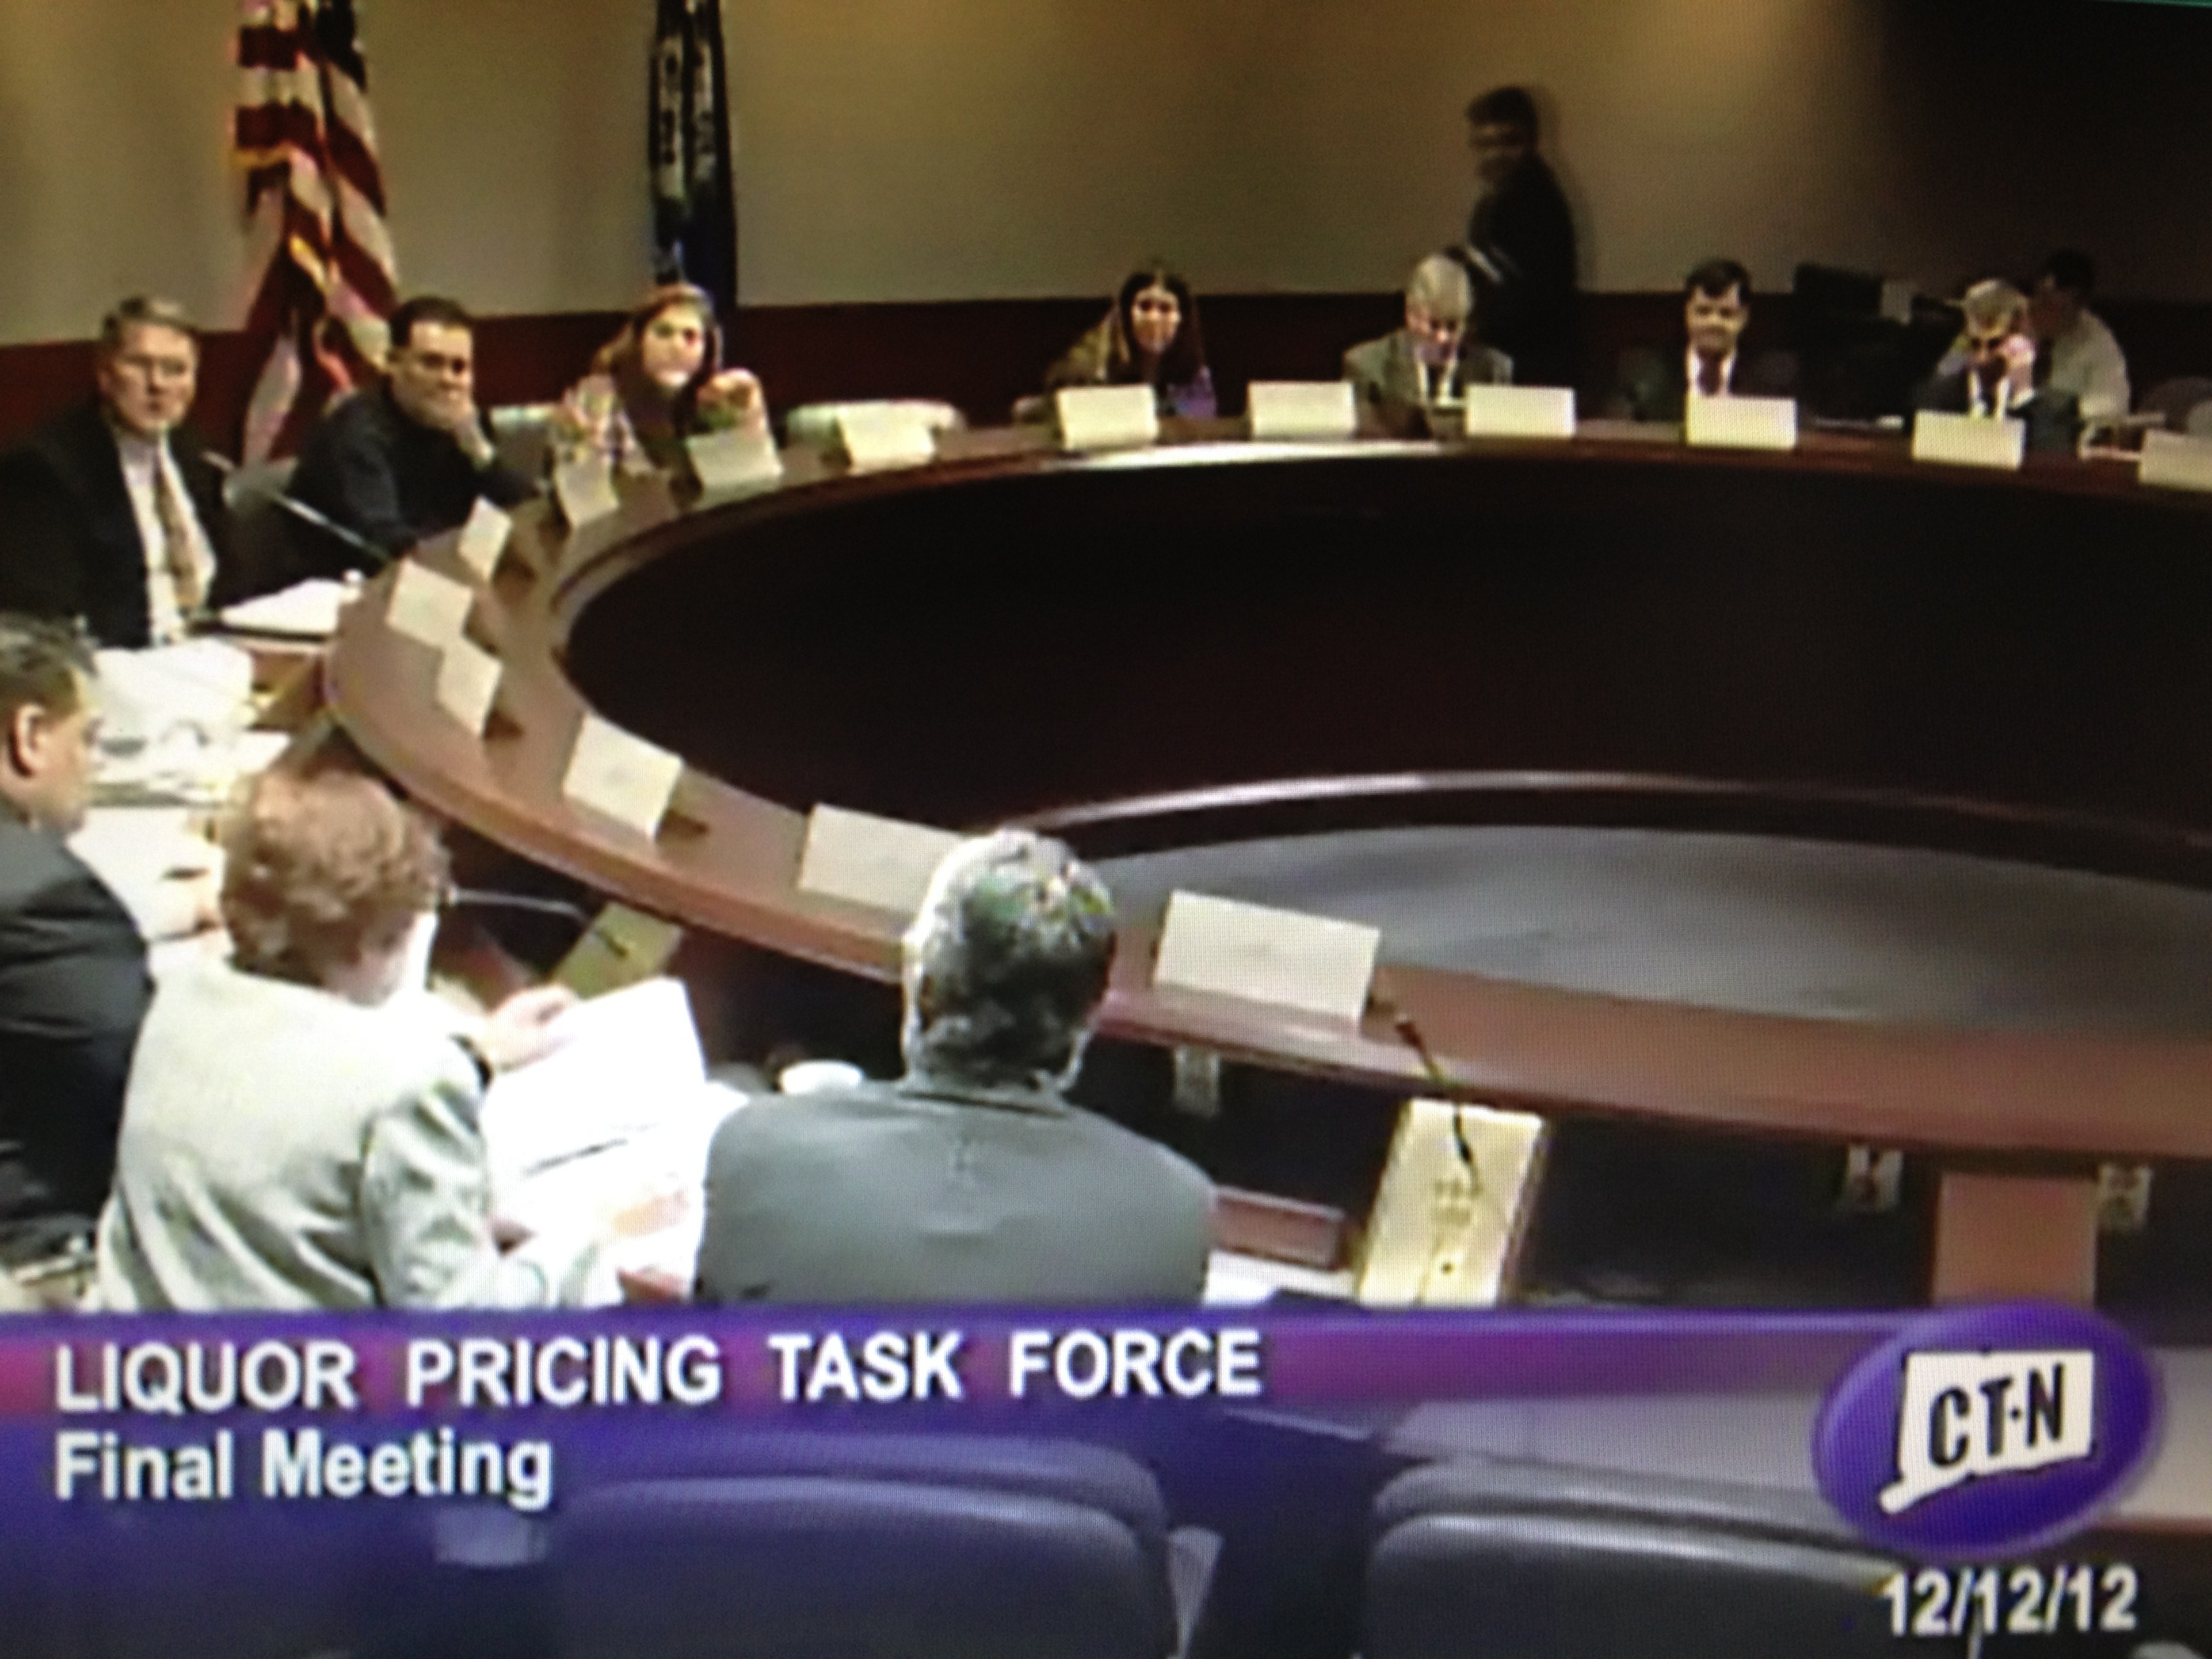 Task Force Holds Final Meeting Dec. 12; Task Force Economist Gives Exclusive Interview